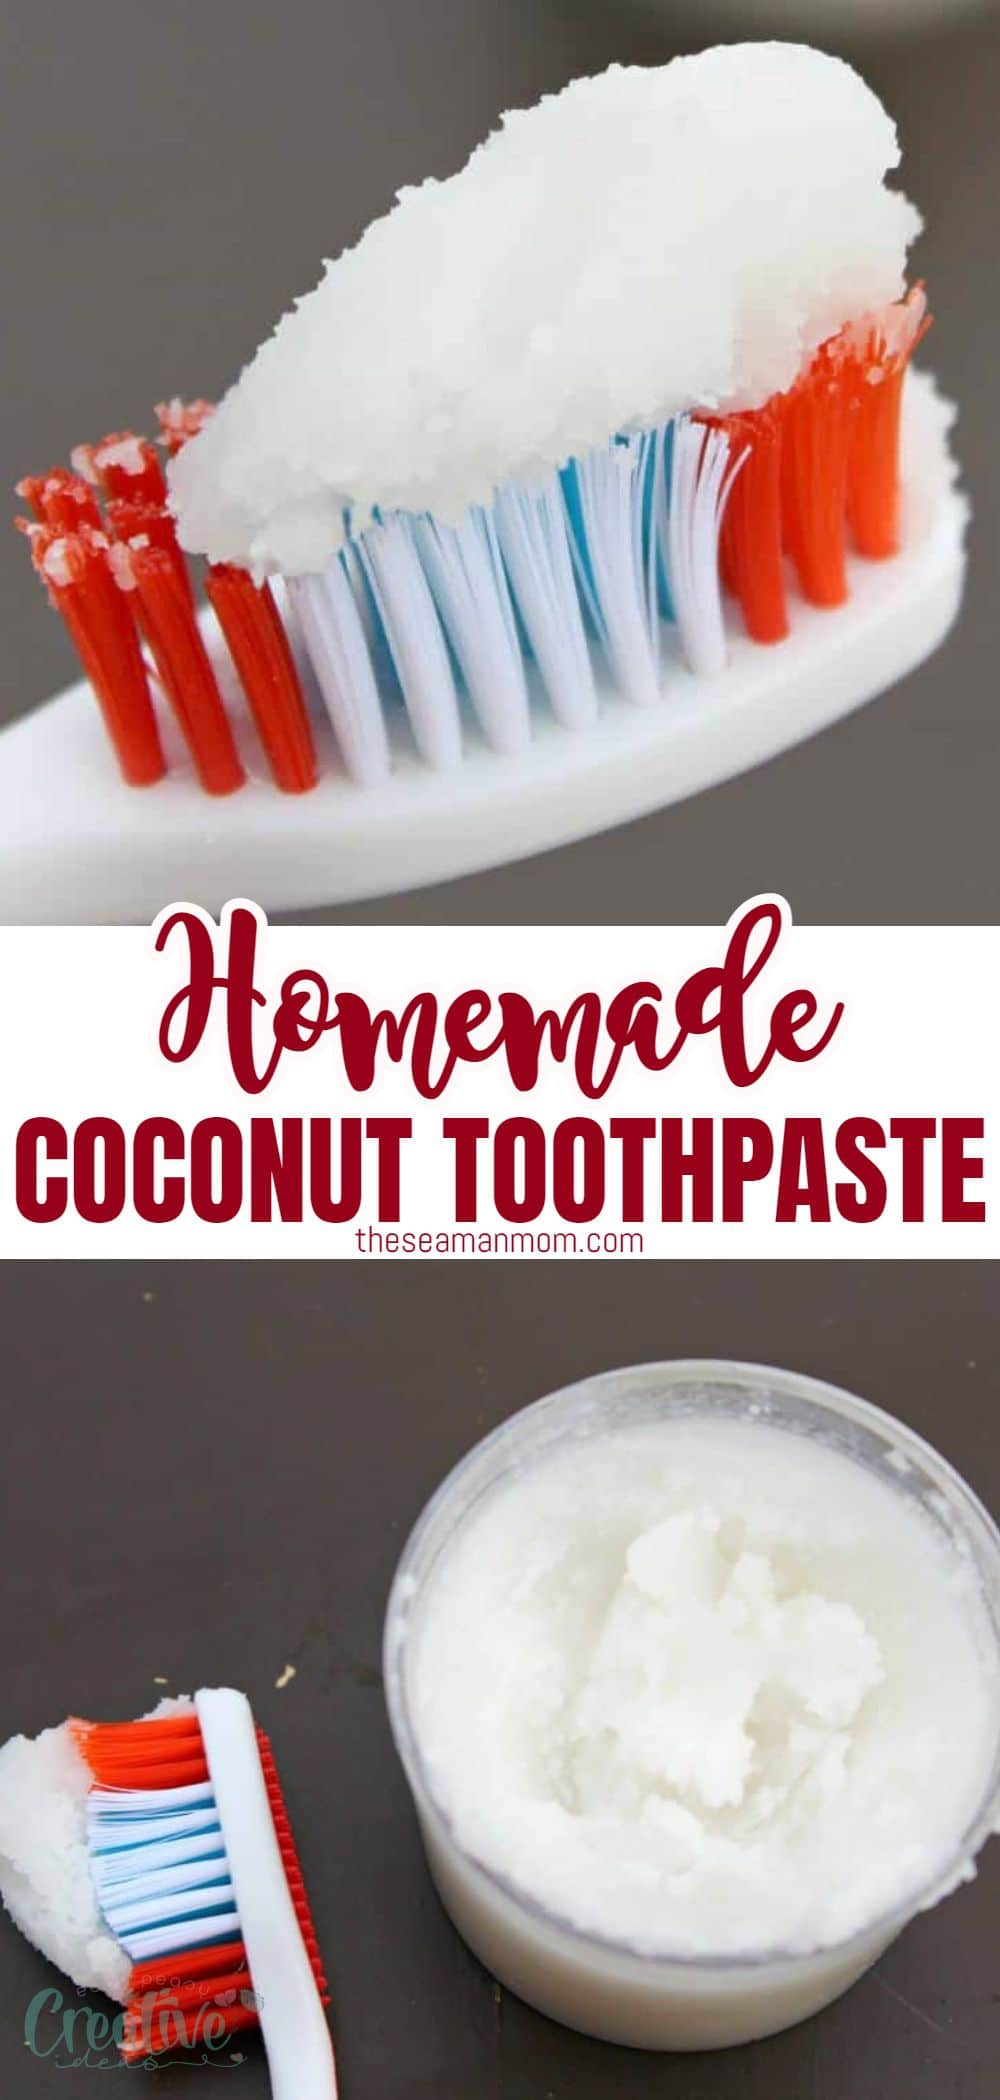 This homemade coconut oil toothpaste recipe is simple and fun to prepare and also much safer and healthier for your teeth. Perfect product to add to your selfcare and beauty arsenal if you're looking to lead a greener lifestyle! via @petroneagu